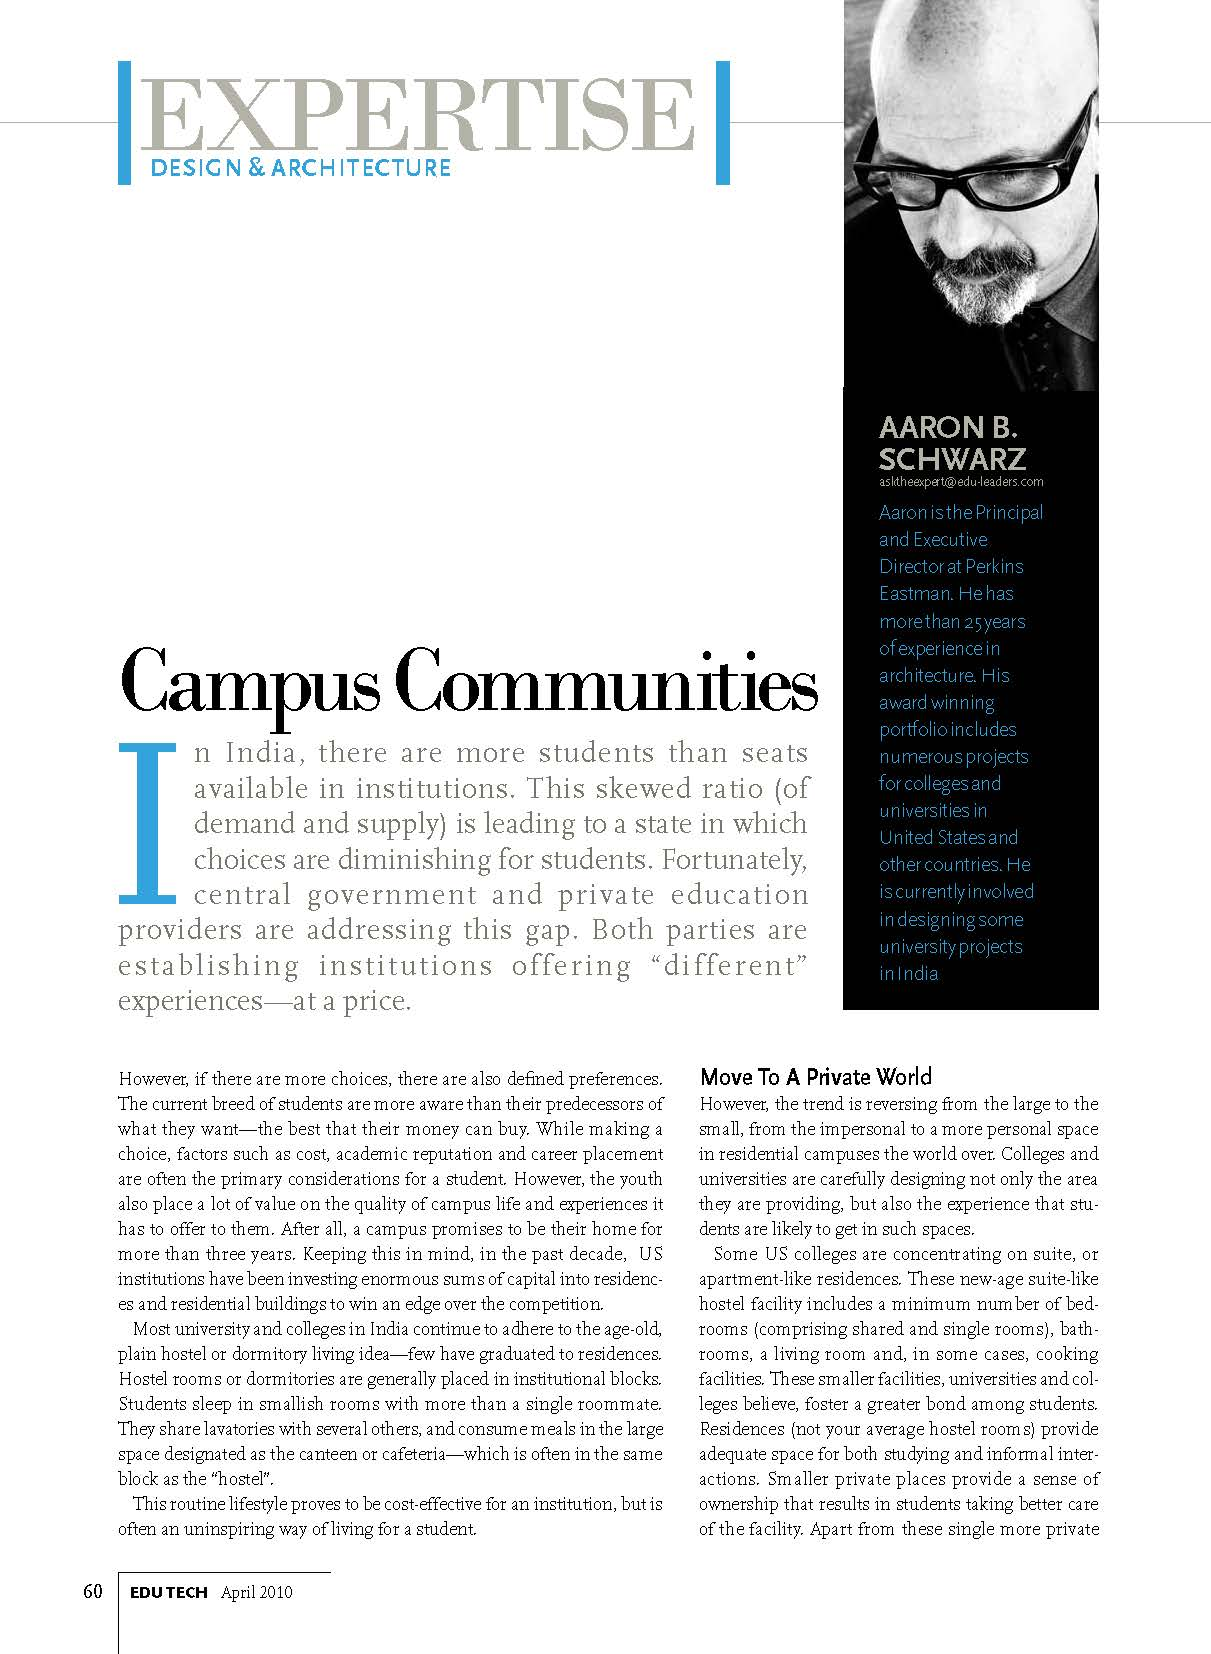 edu combined articles_Page_08.jpg